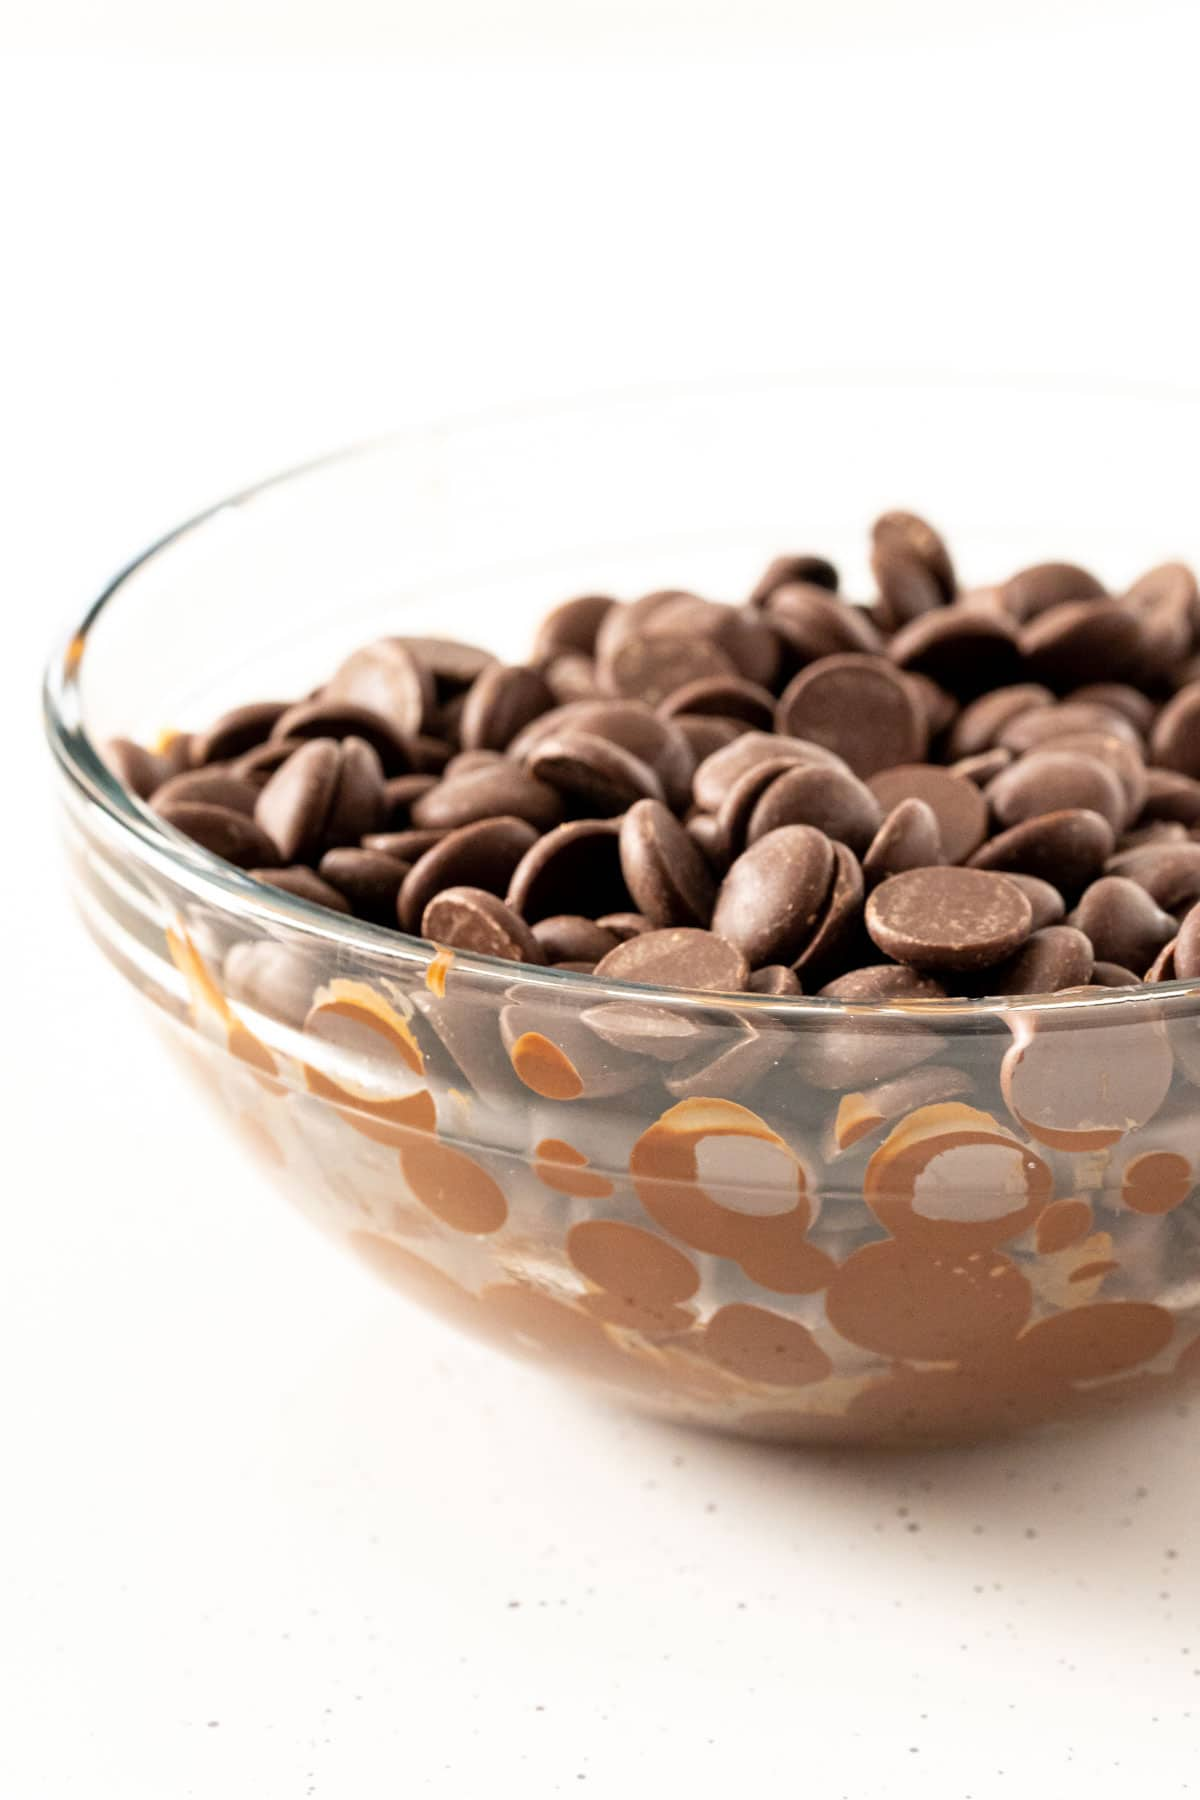 Bowl with melted chocolate in it